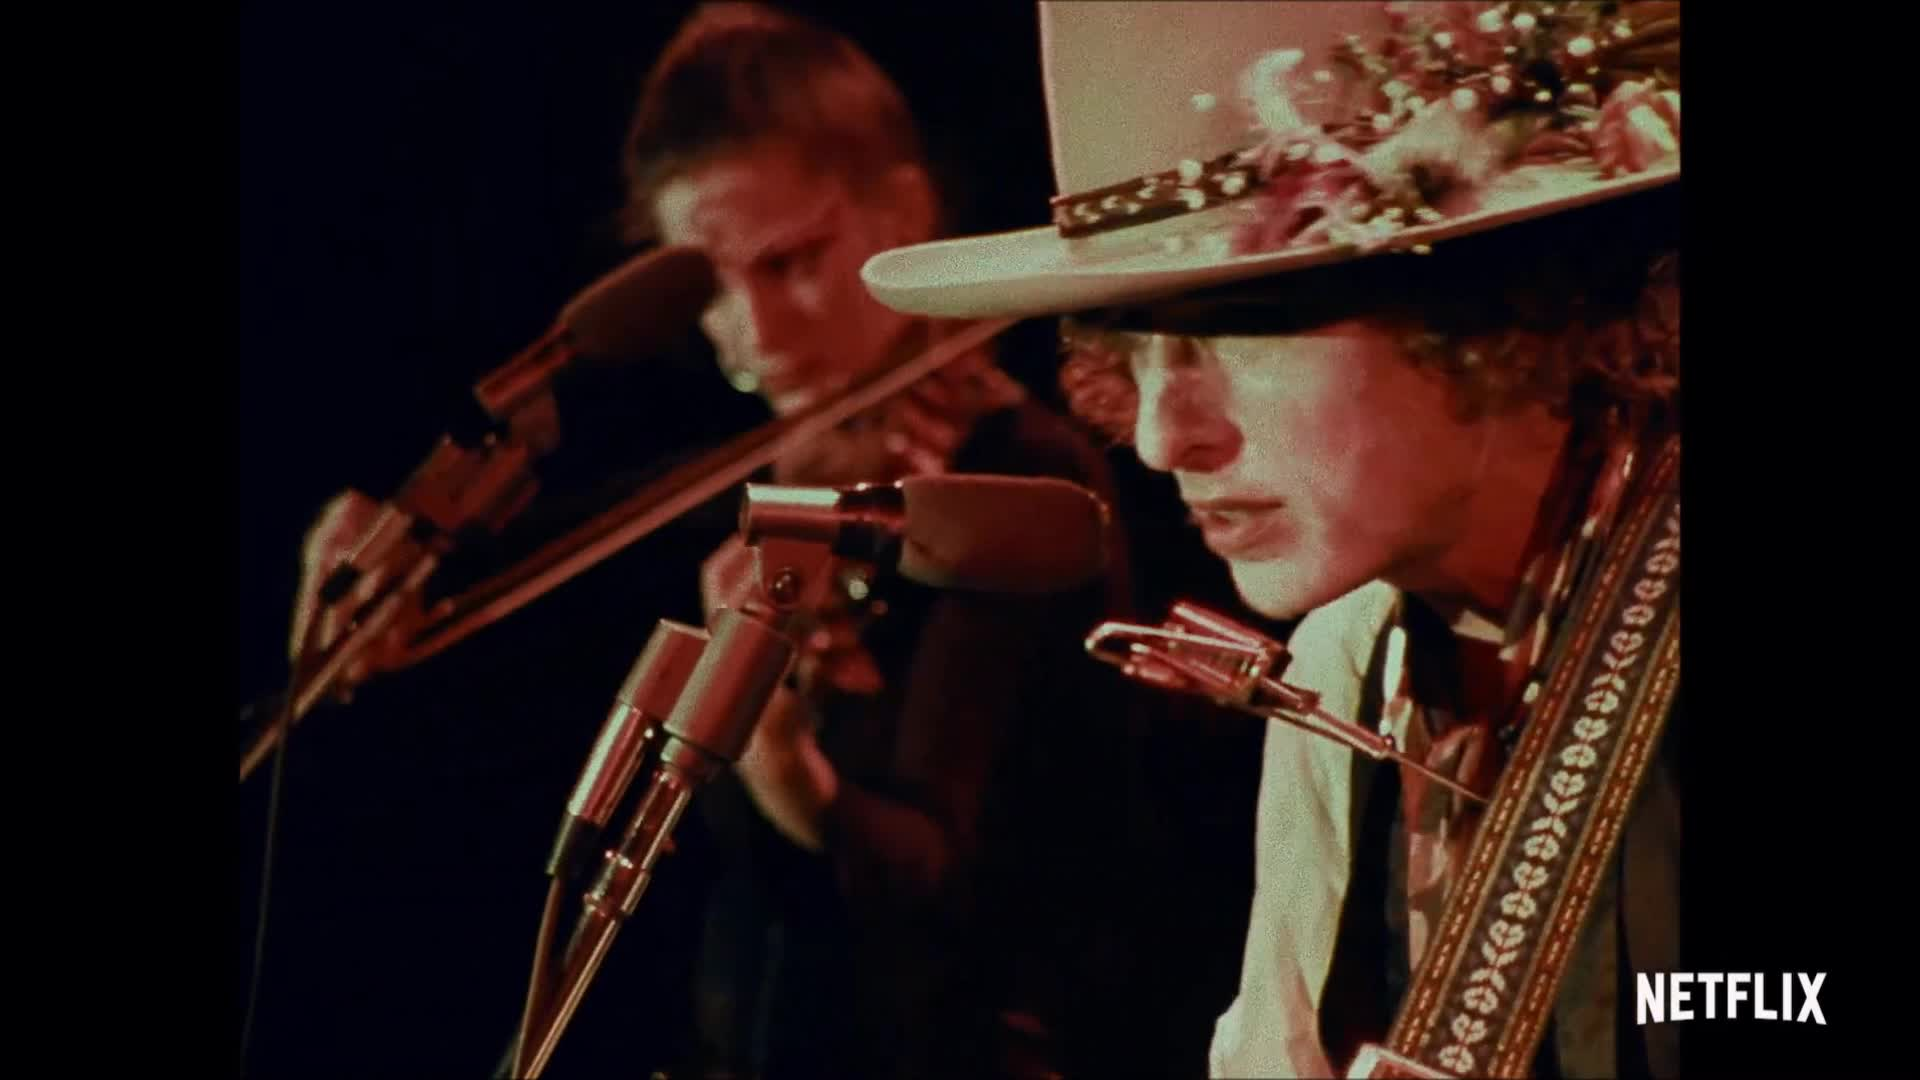 Rolling Thunder Revue A Bob Dylan Story by Martin Scorsese 24x36inch Silk Poster